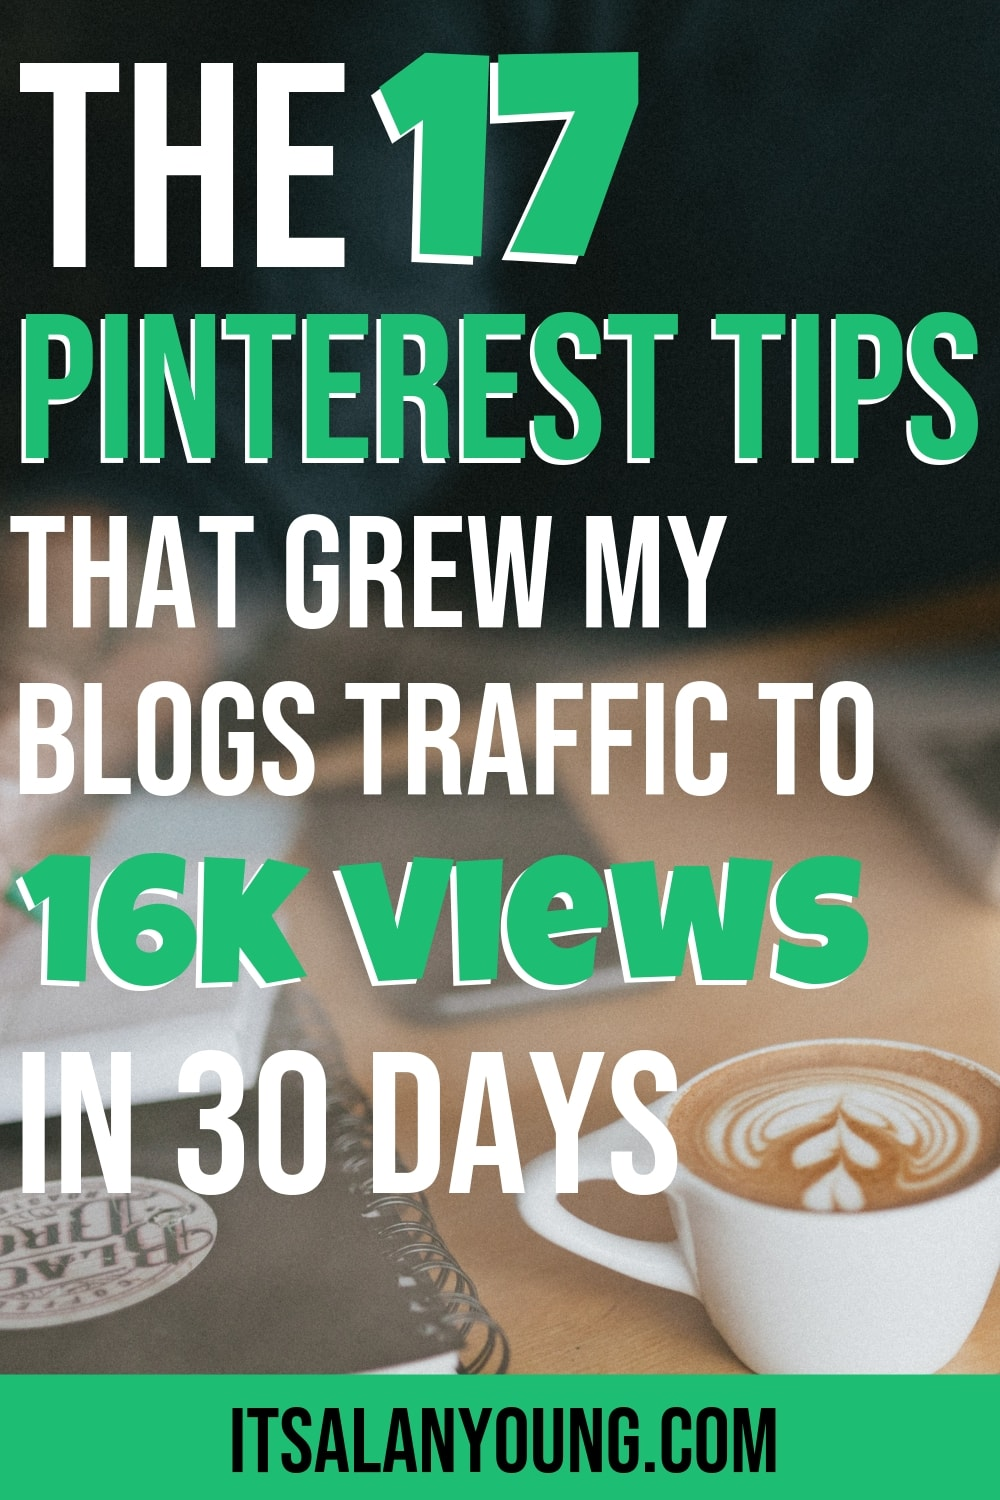 I'm sure you'll agree with me that it's super frustrating to spend weeks if not months building a blog and creating tons of content but no one coming to view it. That\'s what happened to me. Till I started using Pinterest, then my blog traffic took off like a rocket and I\'ve hit 16k pageviews in the first month. If you need traffic then check my 17 Pinterest tips for blog traffic.  #ItsAlanYoung #SEO #Blog #Blogger #Traffic #BloggingTips #WorkOnline #PinterestTips #SocialMedia